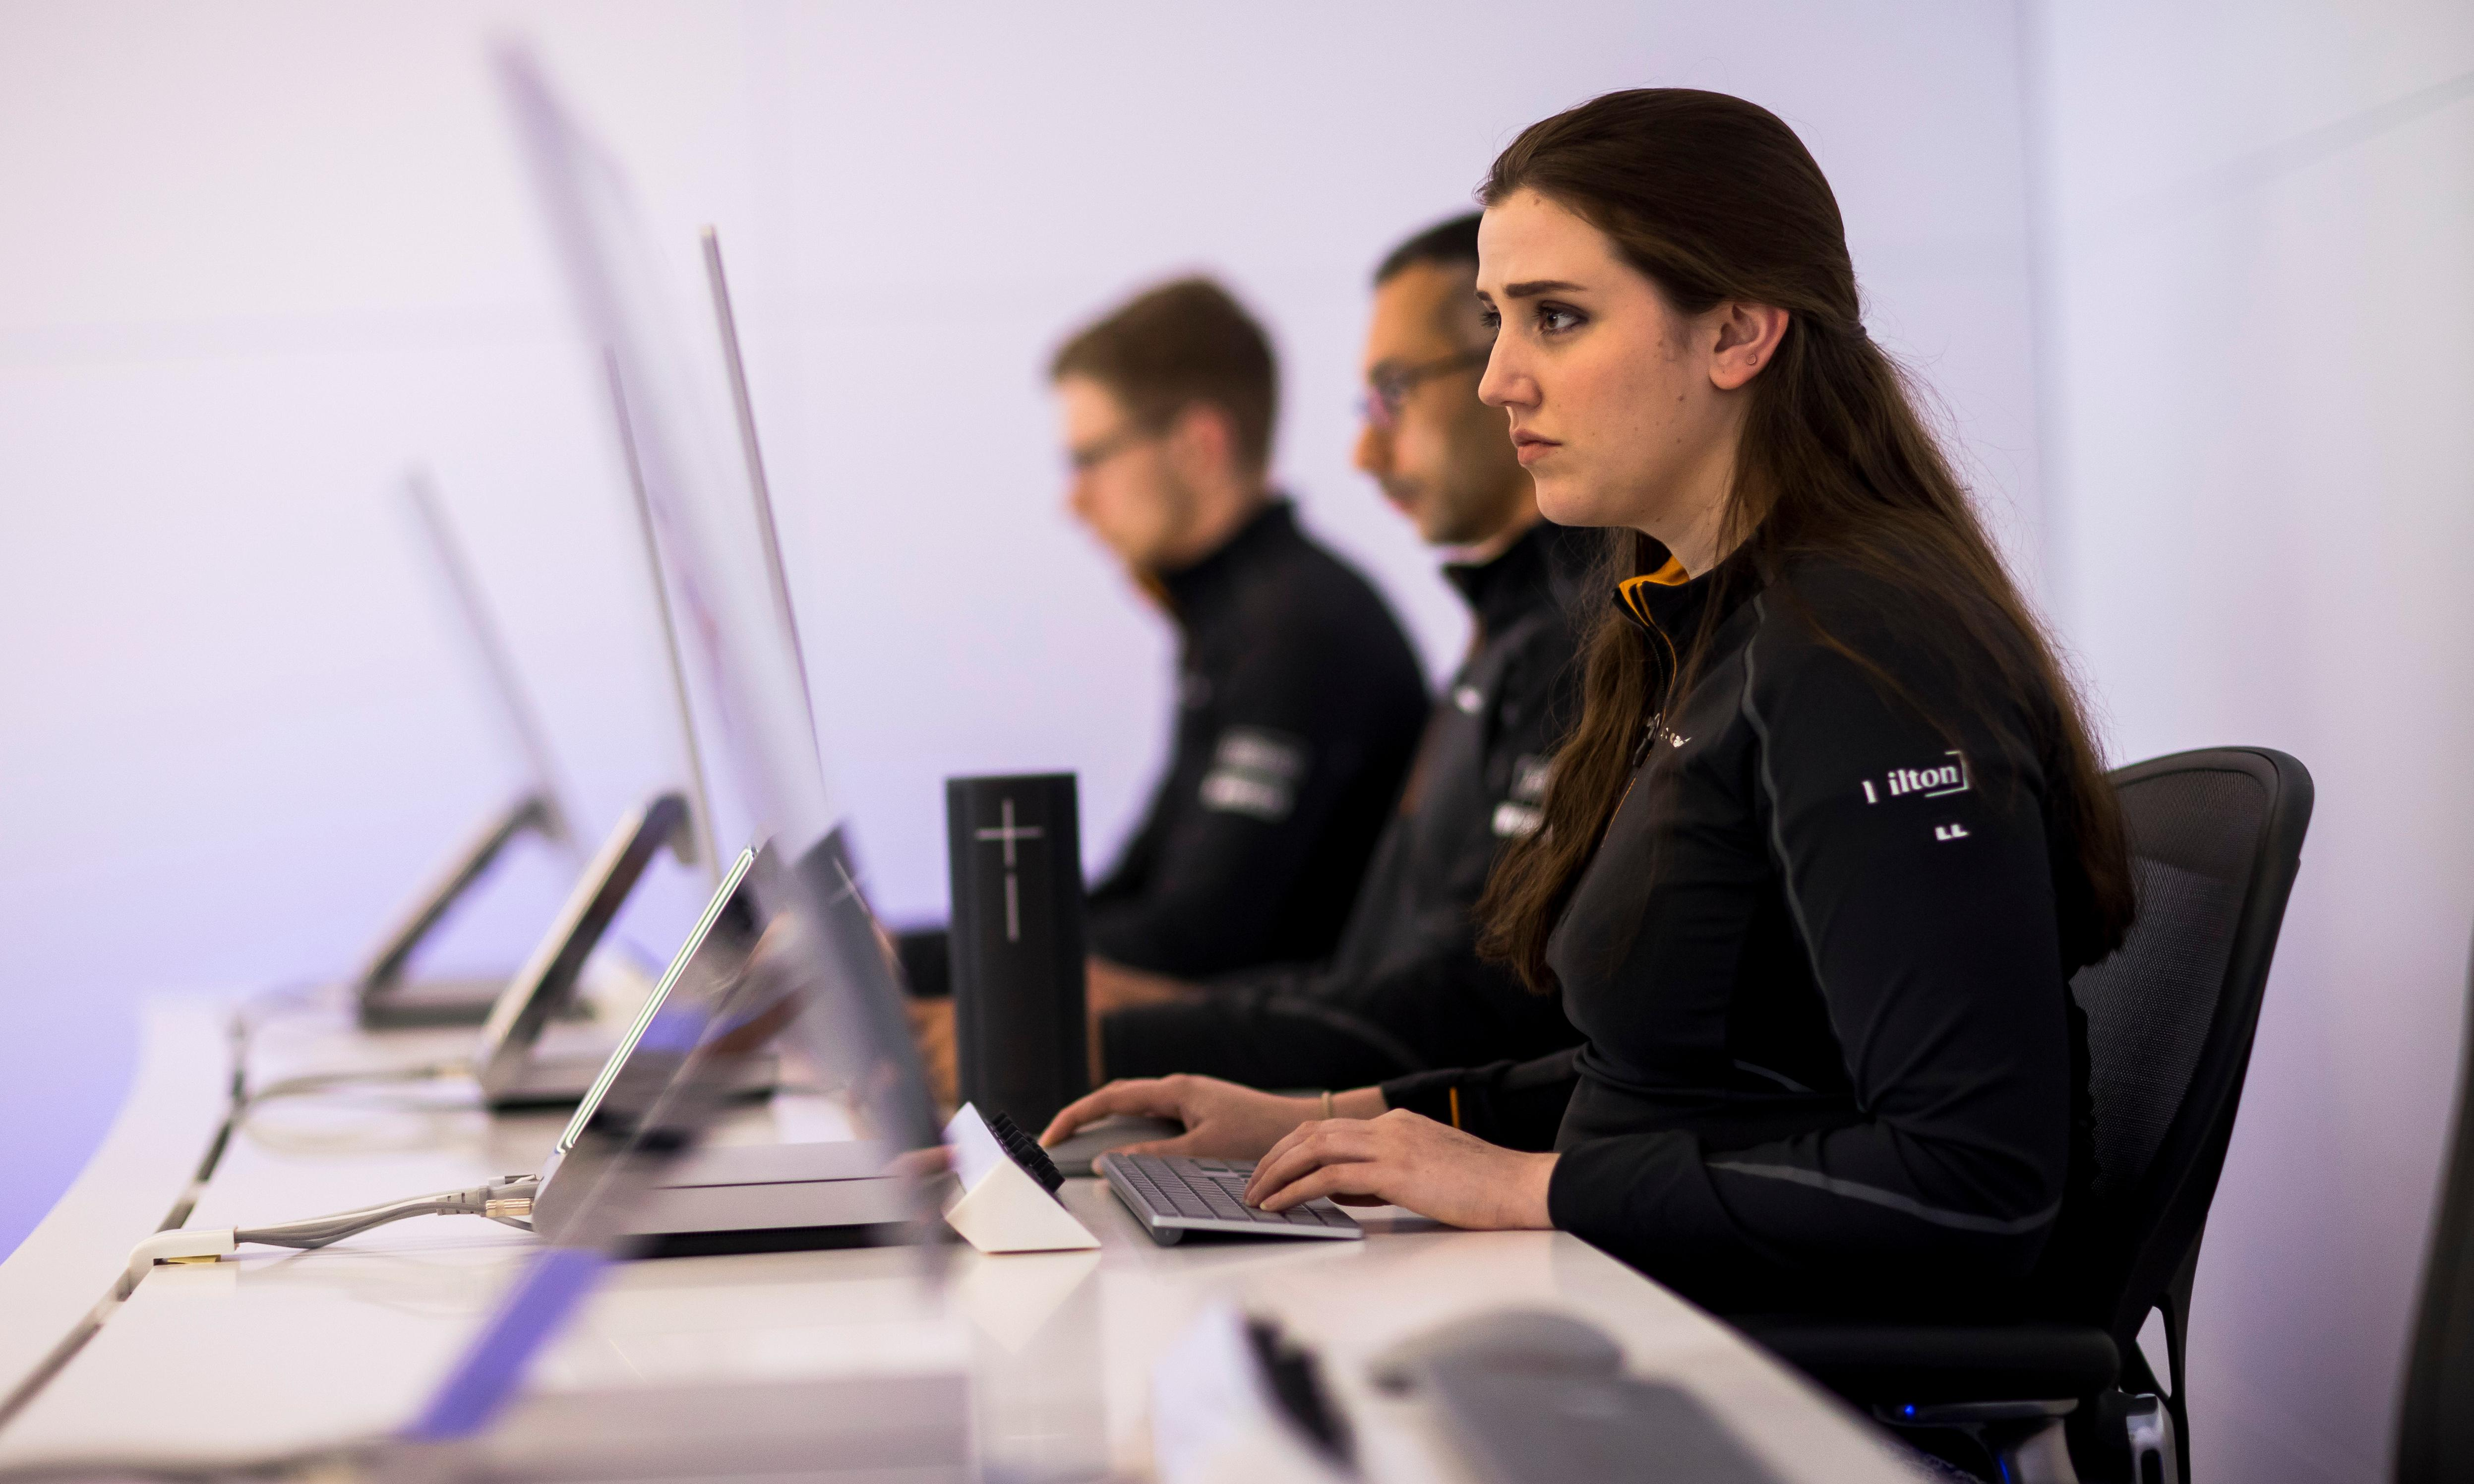 McLaren arrive at Silverstone with talented team driving their resurgence